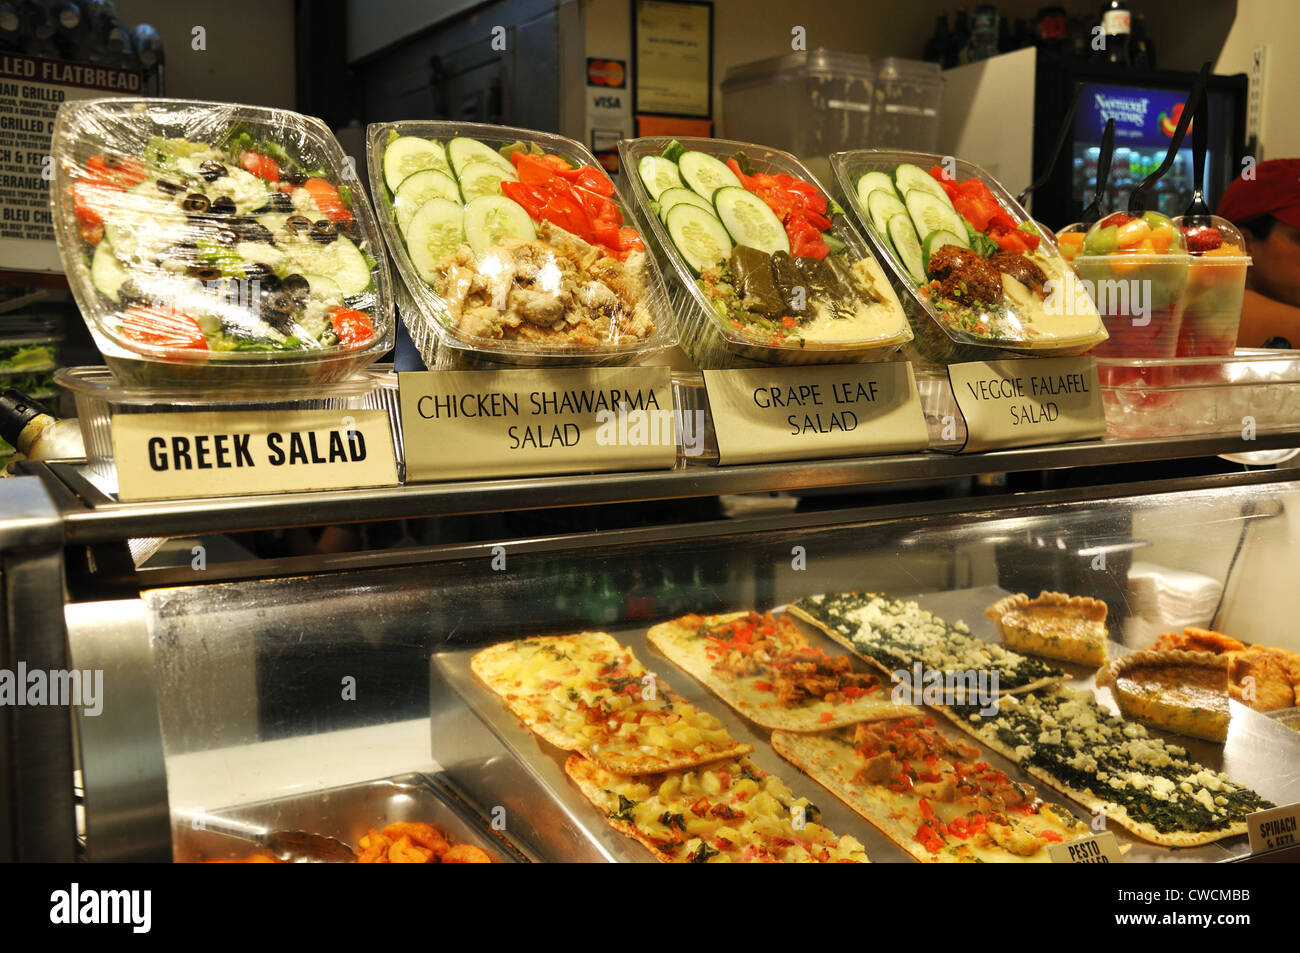 Quincy Market Food Court in Boston, Massachusetts, USA Stock Photo, Royalty Free Image: 50066559 ...